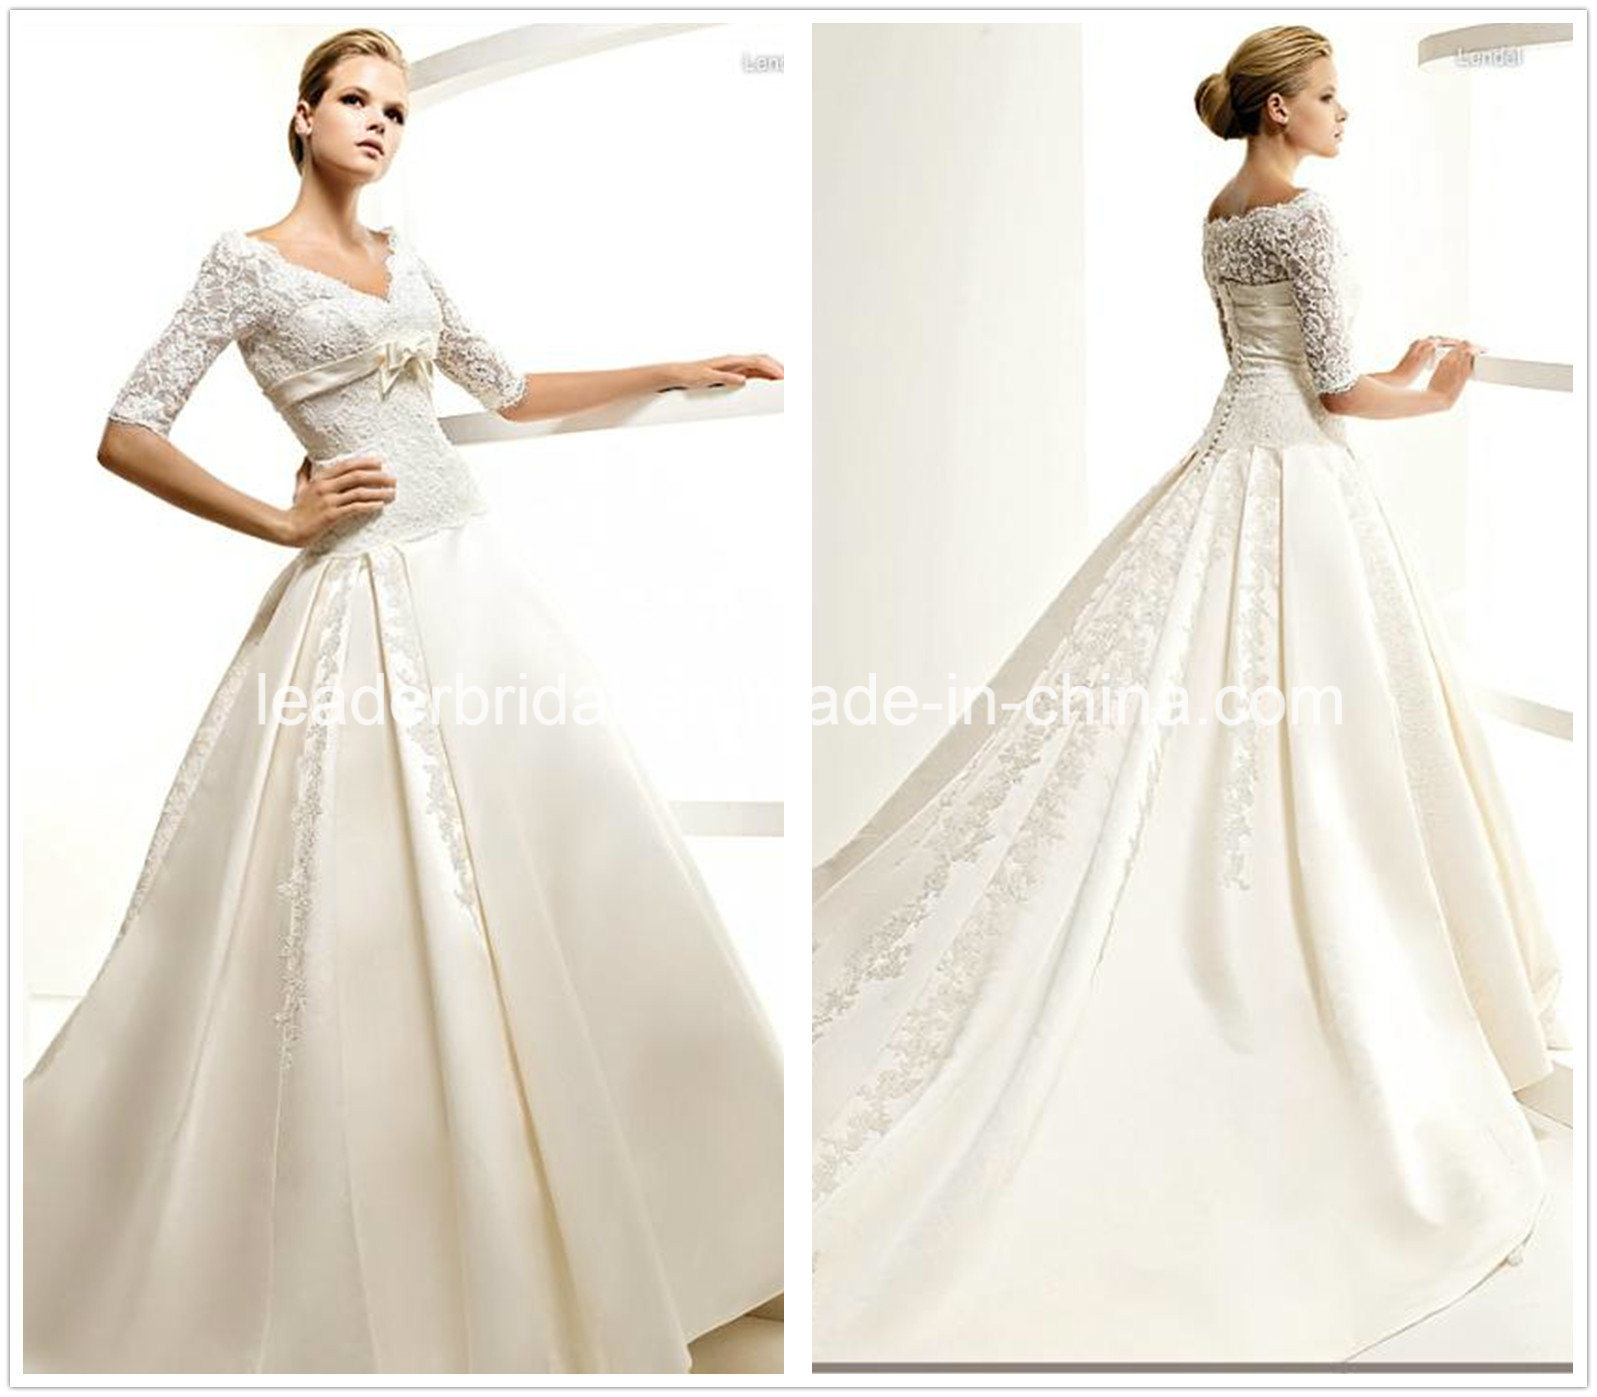 Wedding Ball Gowns - Suzhou Leader Apparel Co., Ltd. - page 1.